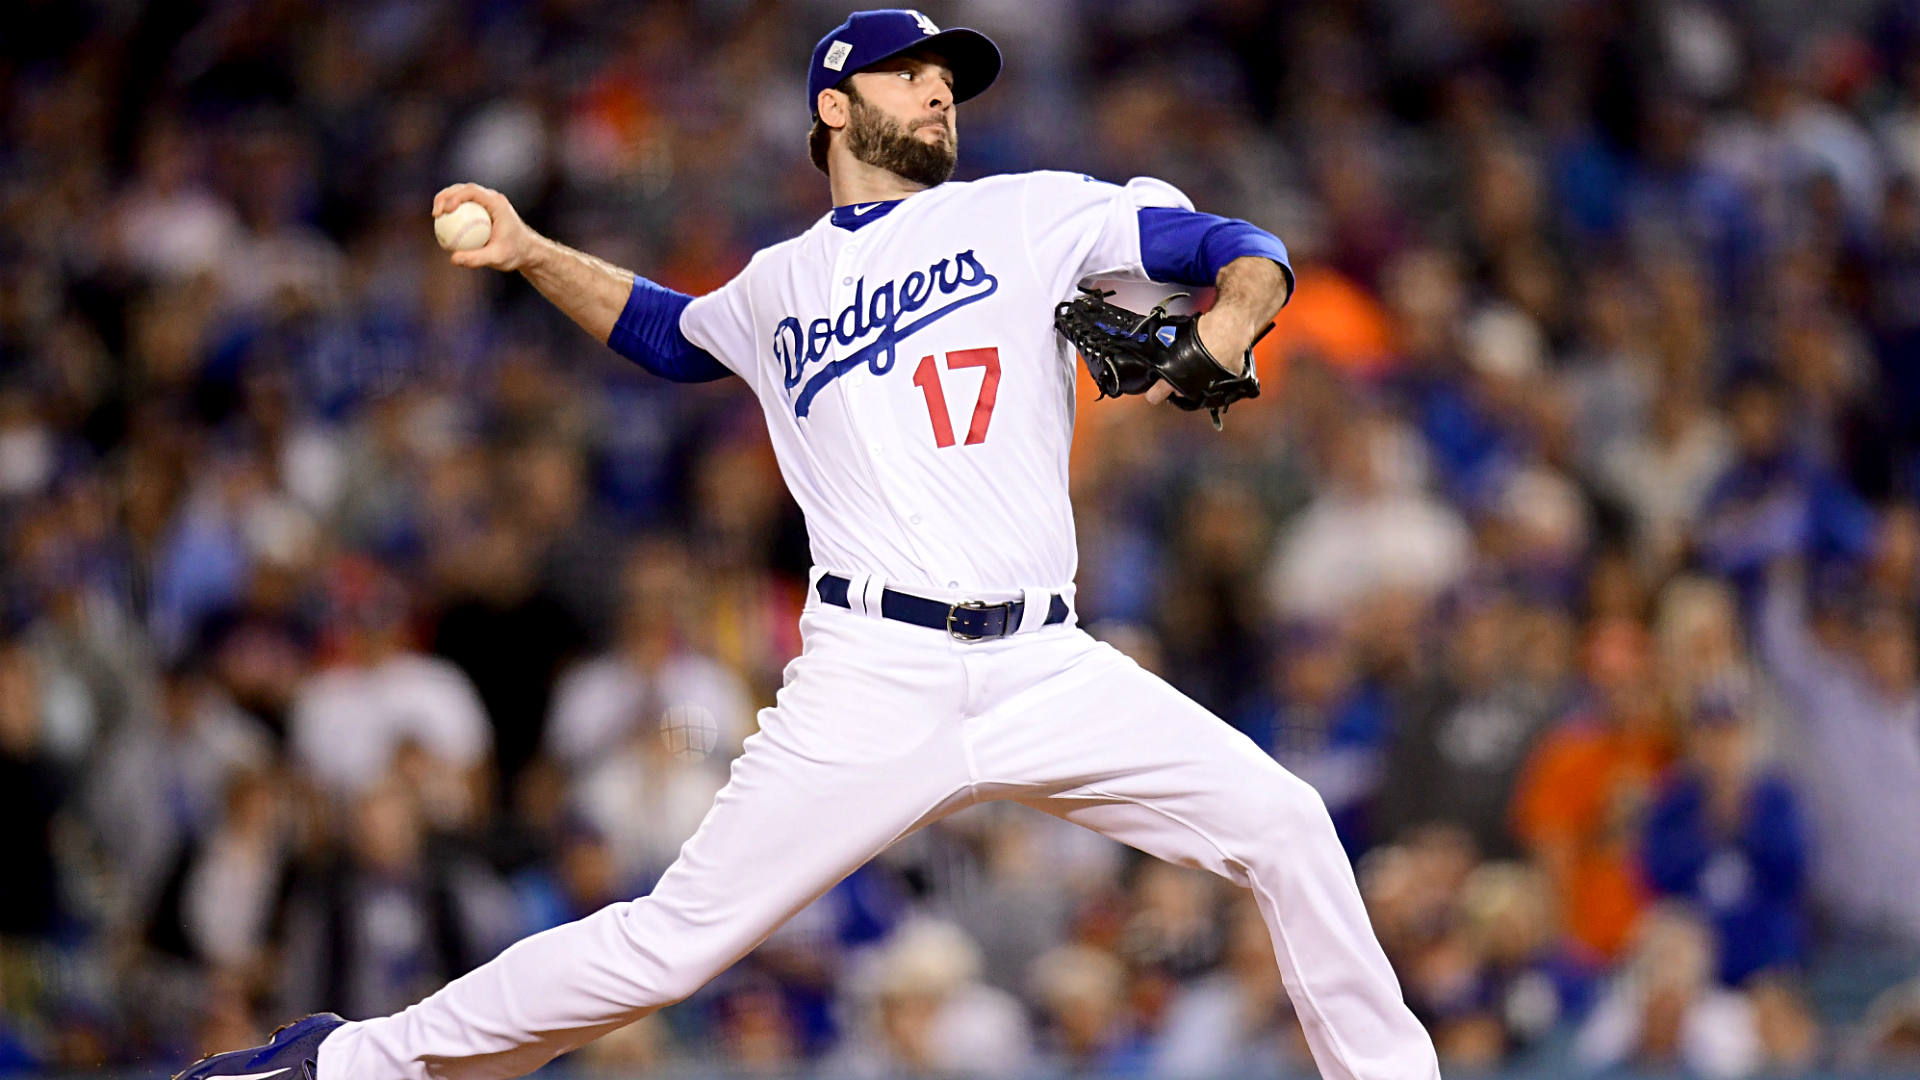 Brandonmorrow-getty-ftr-121117jpg_ps4o6zh7y3mn1is0rl7u3c256